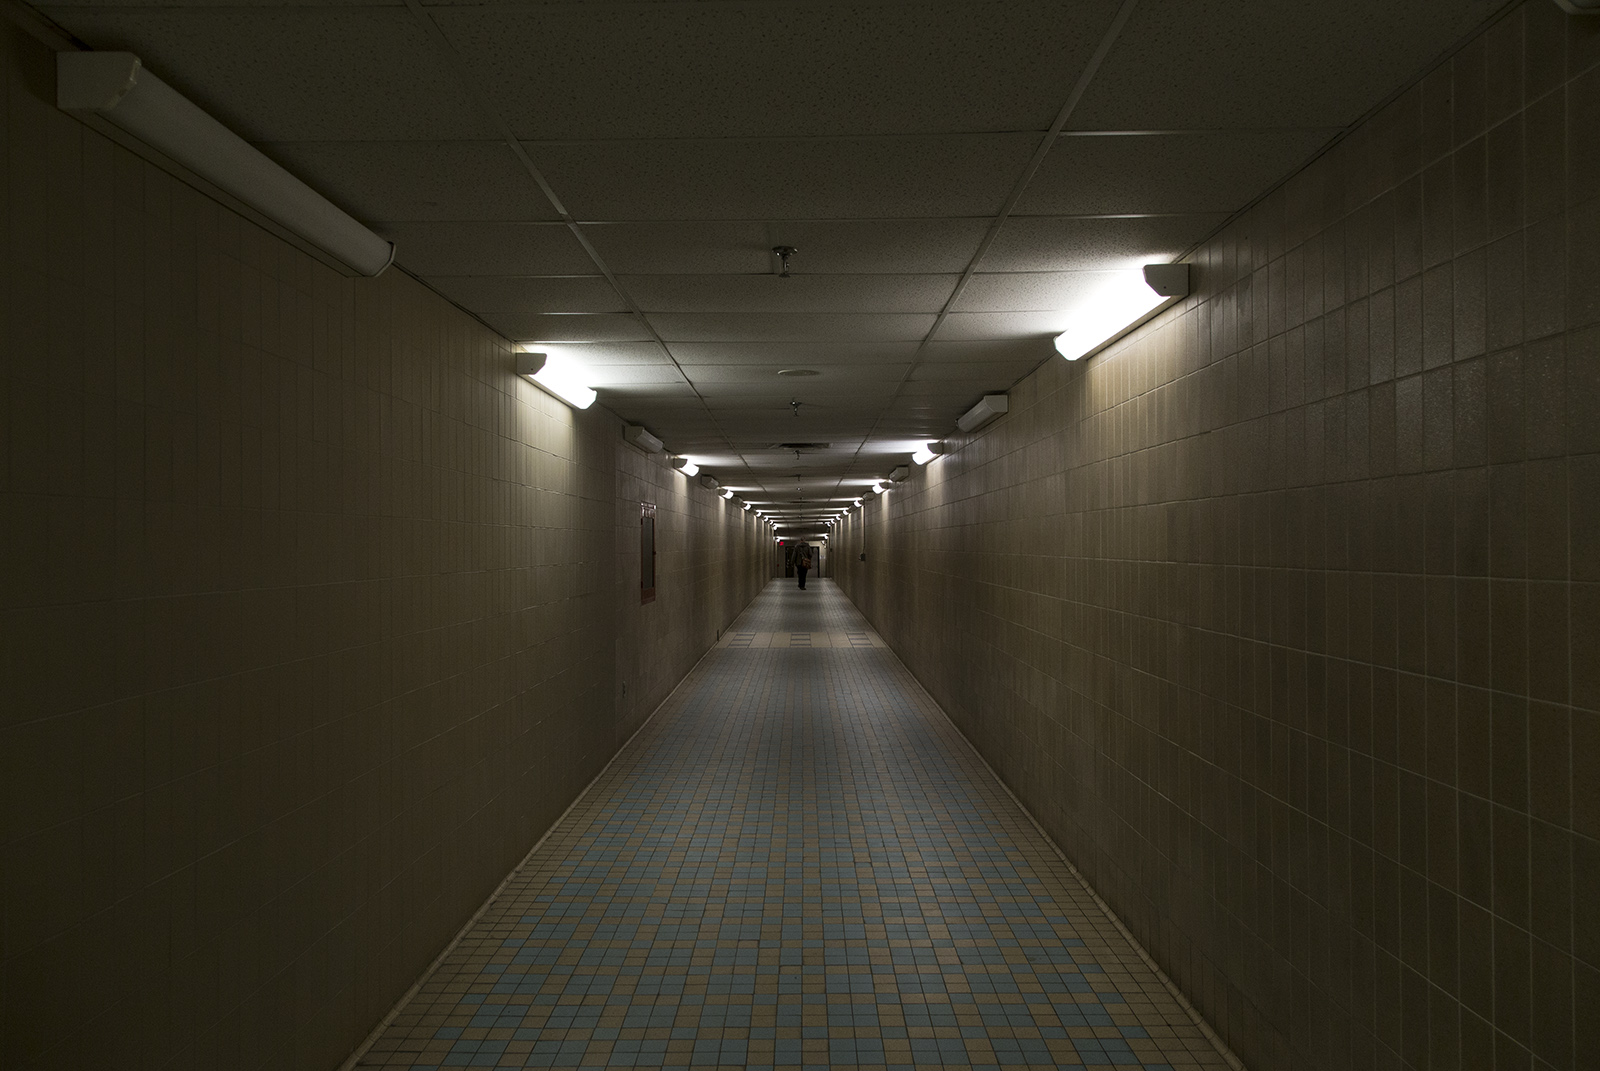 20140220. Inside the tunnel linking Queen's Park subway station and the provincial government buildings.